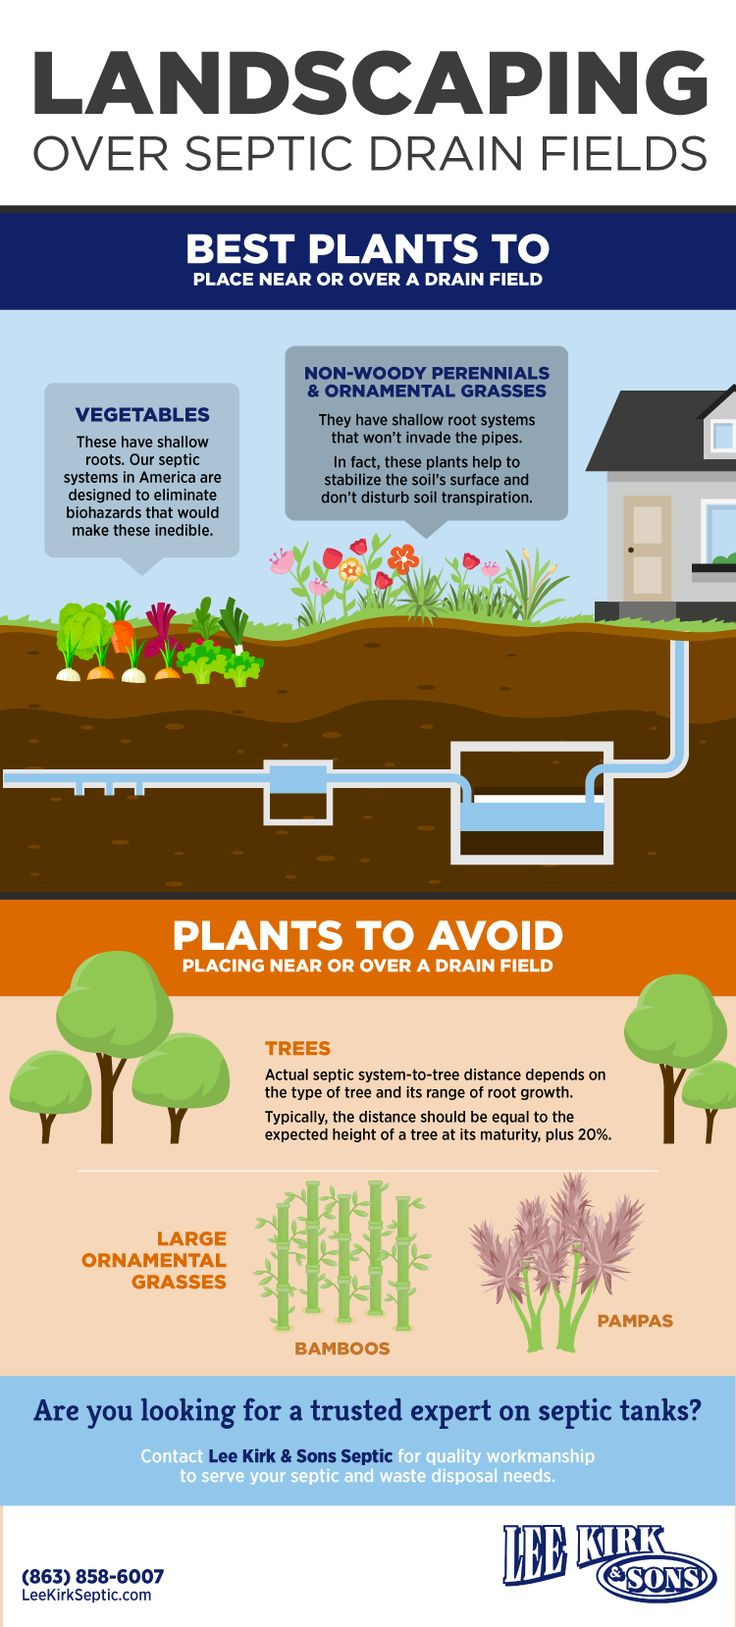 Perfect Plants to Place Over a Septic Drain Field